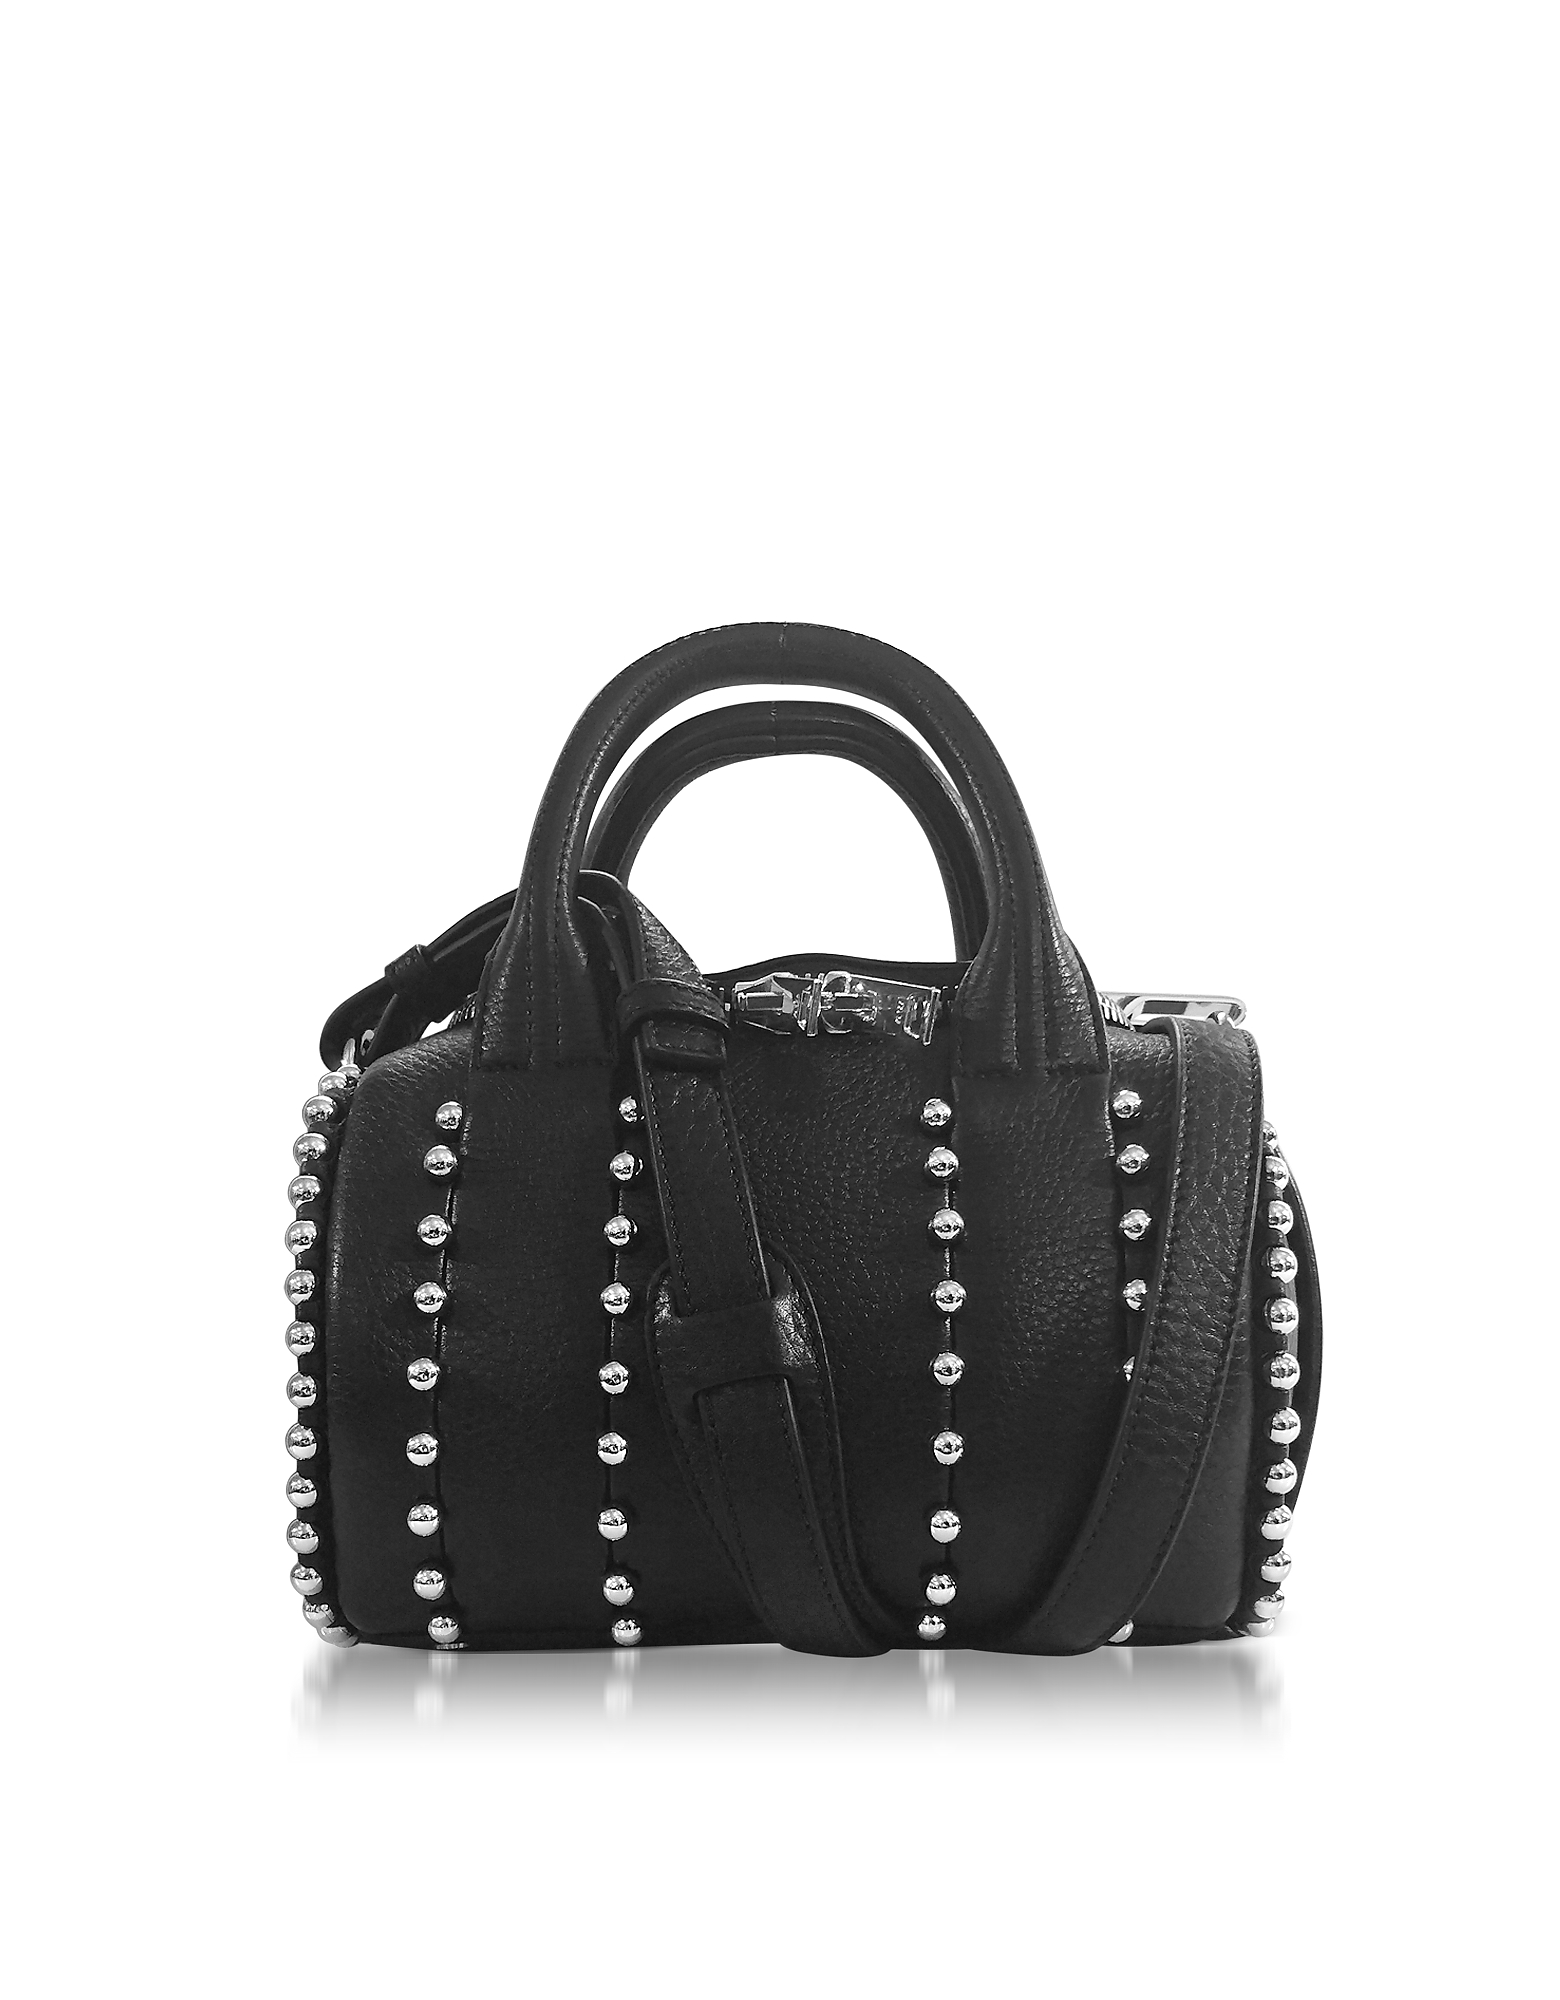 Alexander Wang Handbags, Mini Rockie Ball Studd Black Leather Satchel